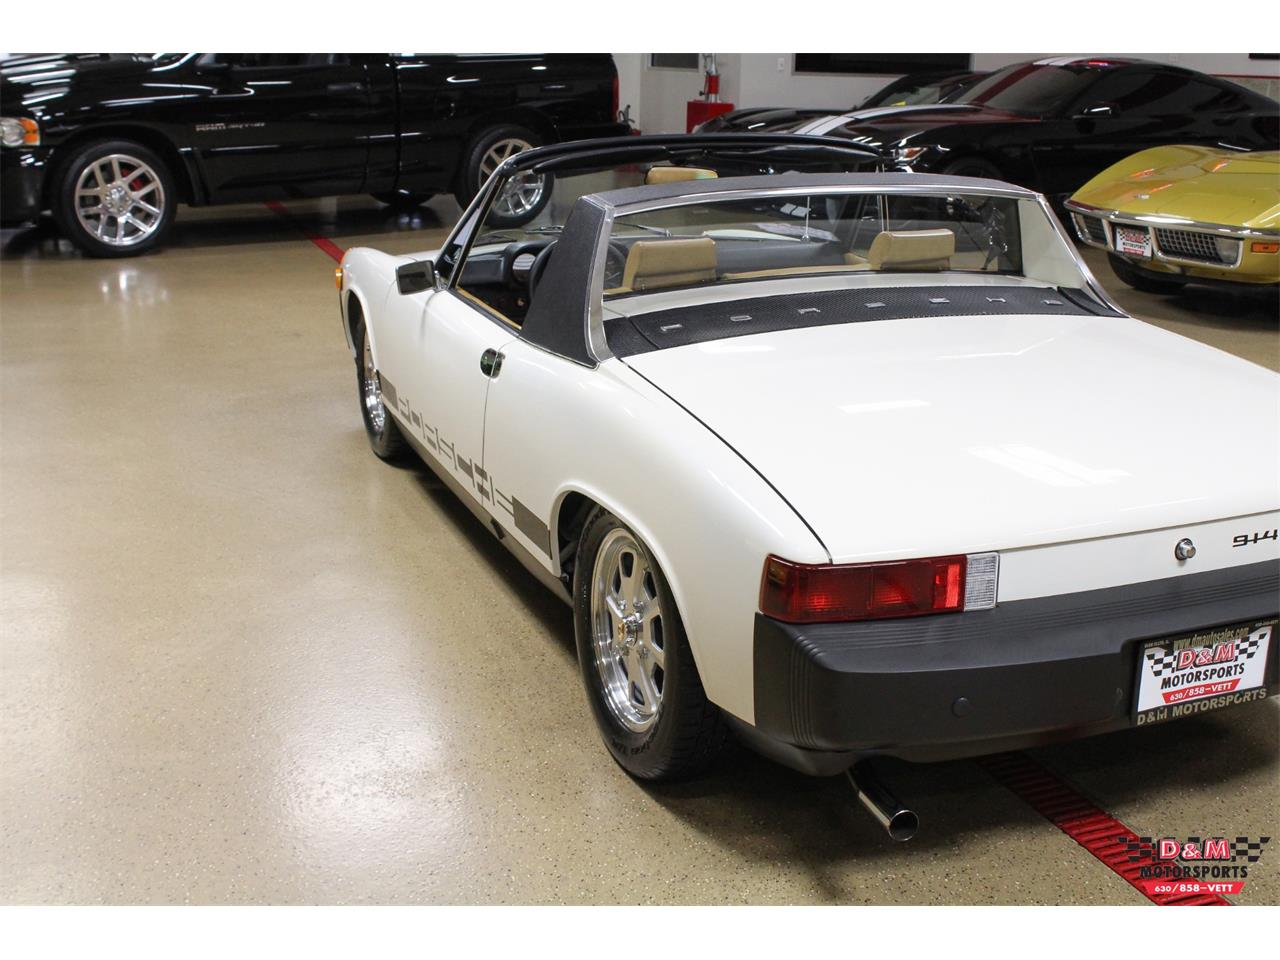 Large Picture of '76 Porsche 914 - $29,995.00 Offered by D & M Motorsports - P8QY